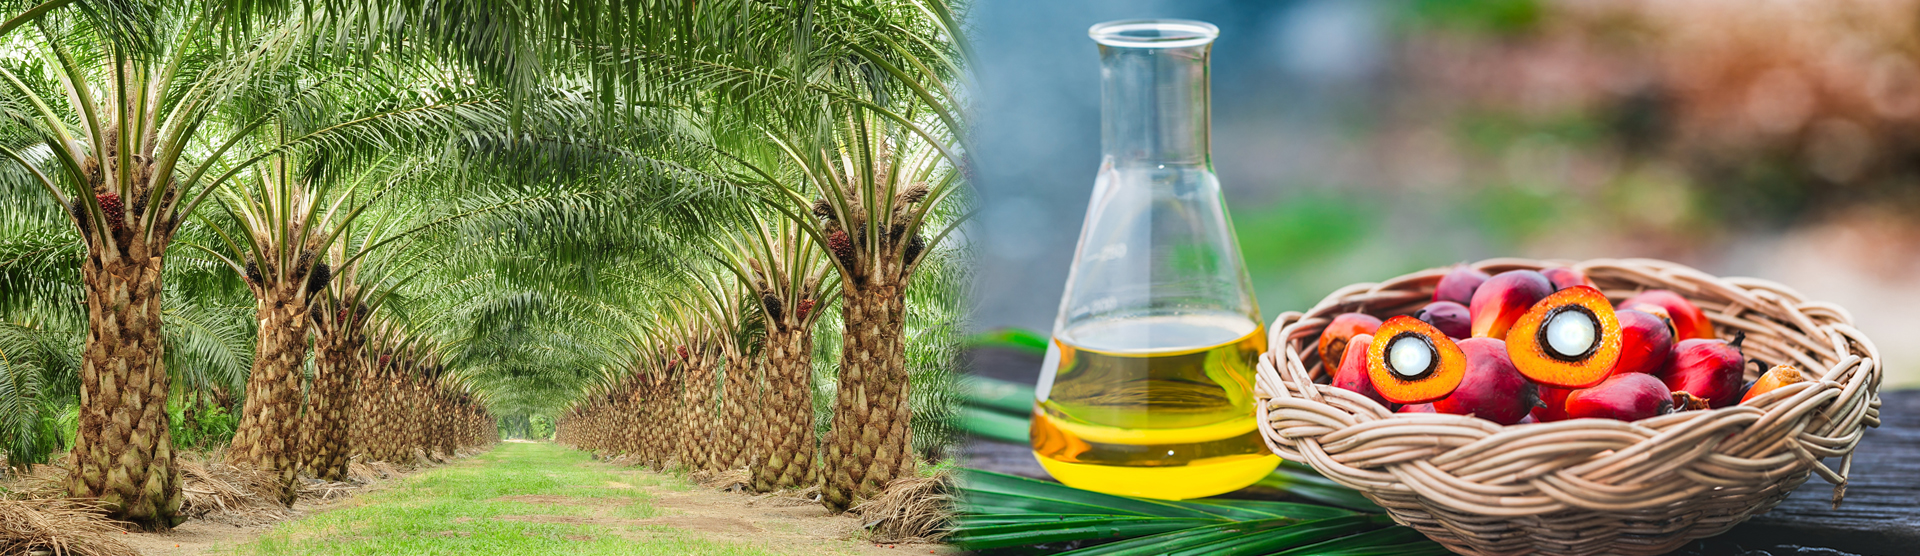 exports_palm_pleochemicals_80_countries